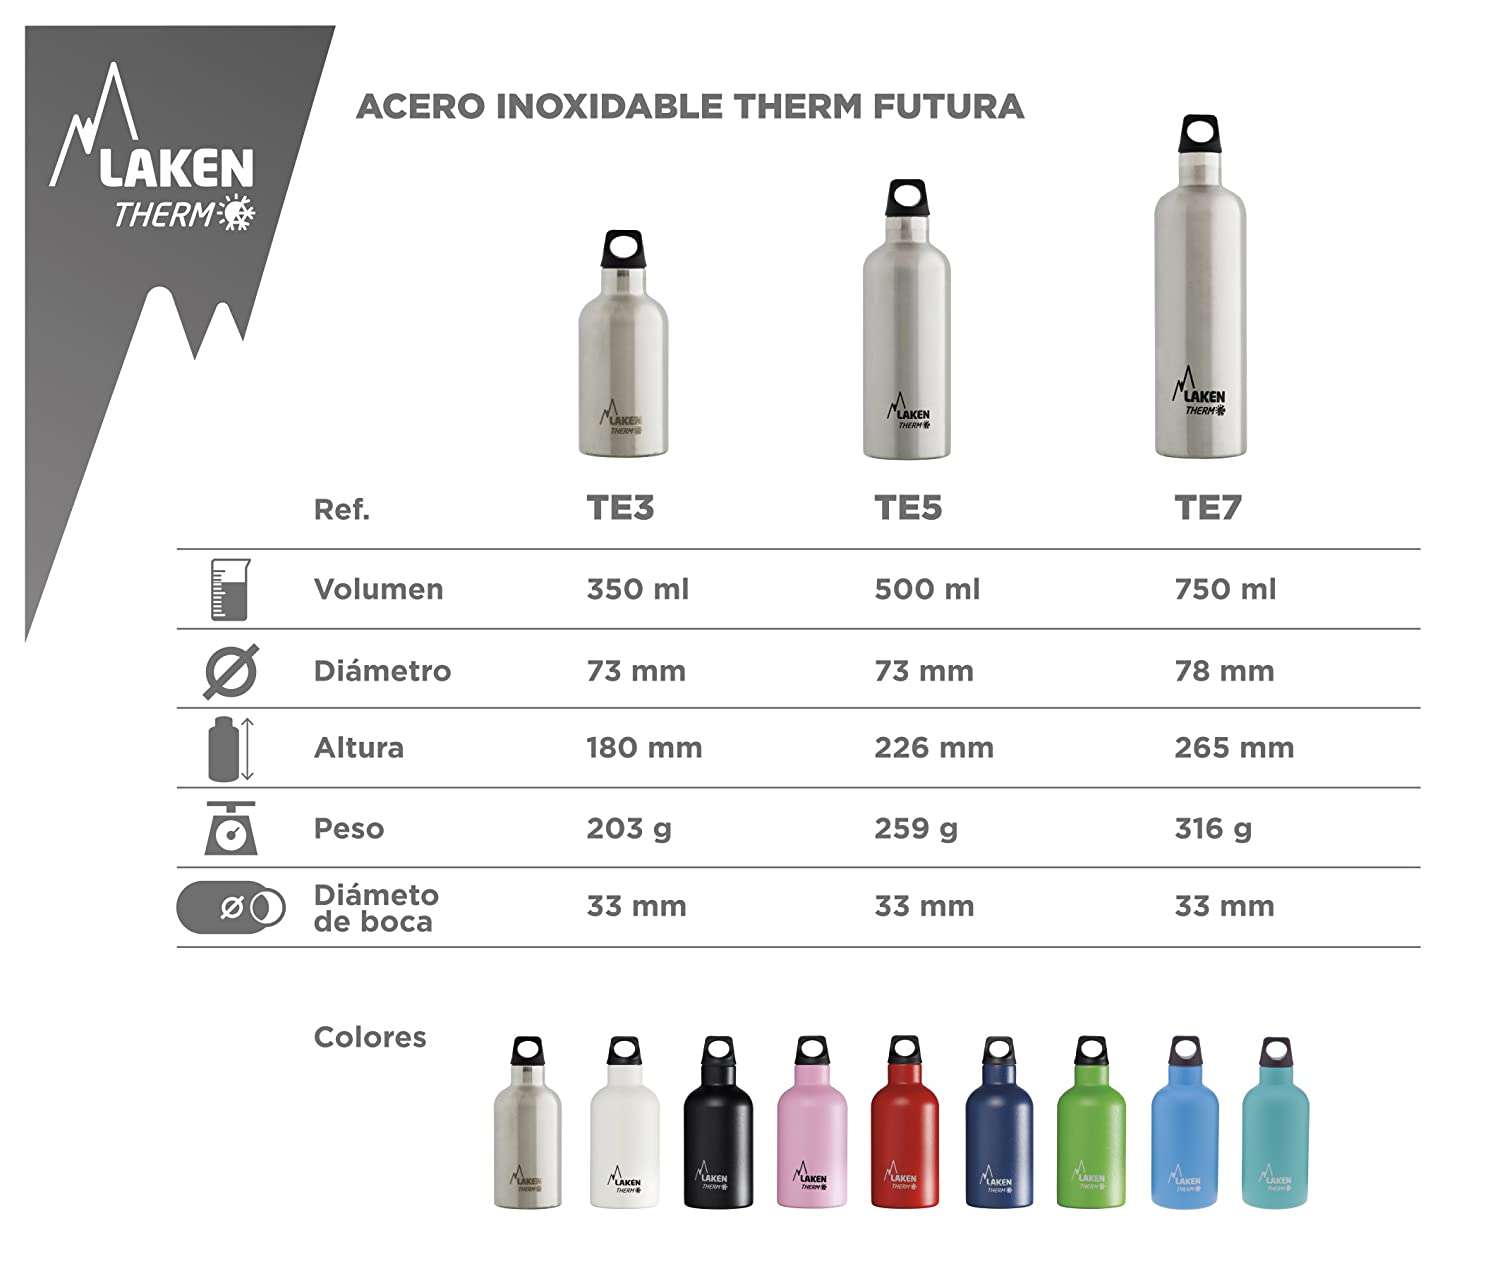 Laken Futura Thermo Insulated Stainless Steel Water Bottle Narrow Mouth